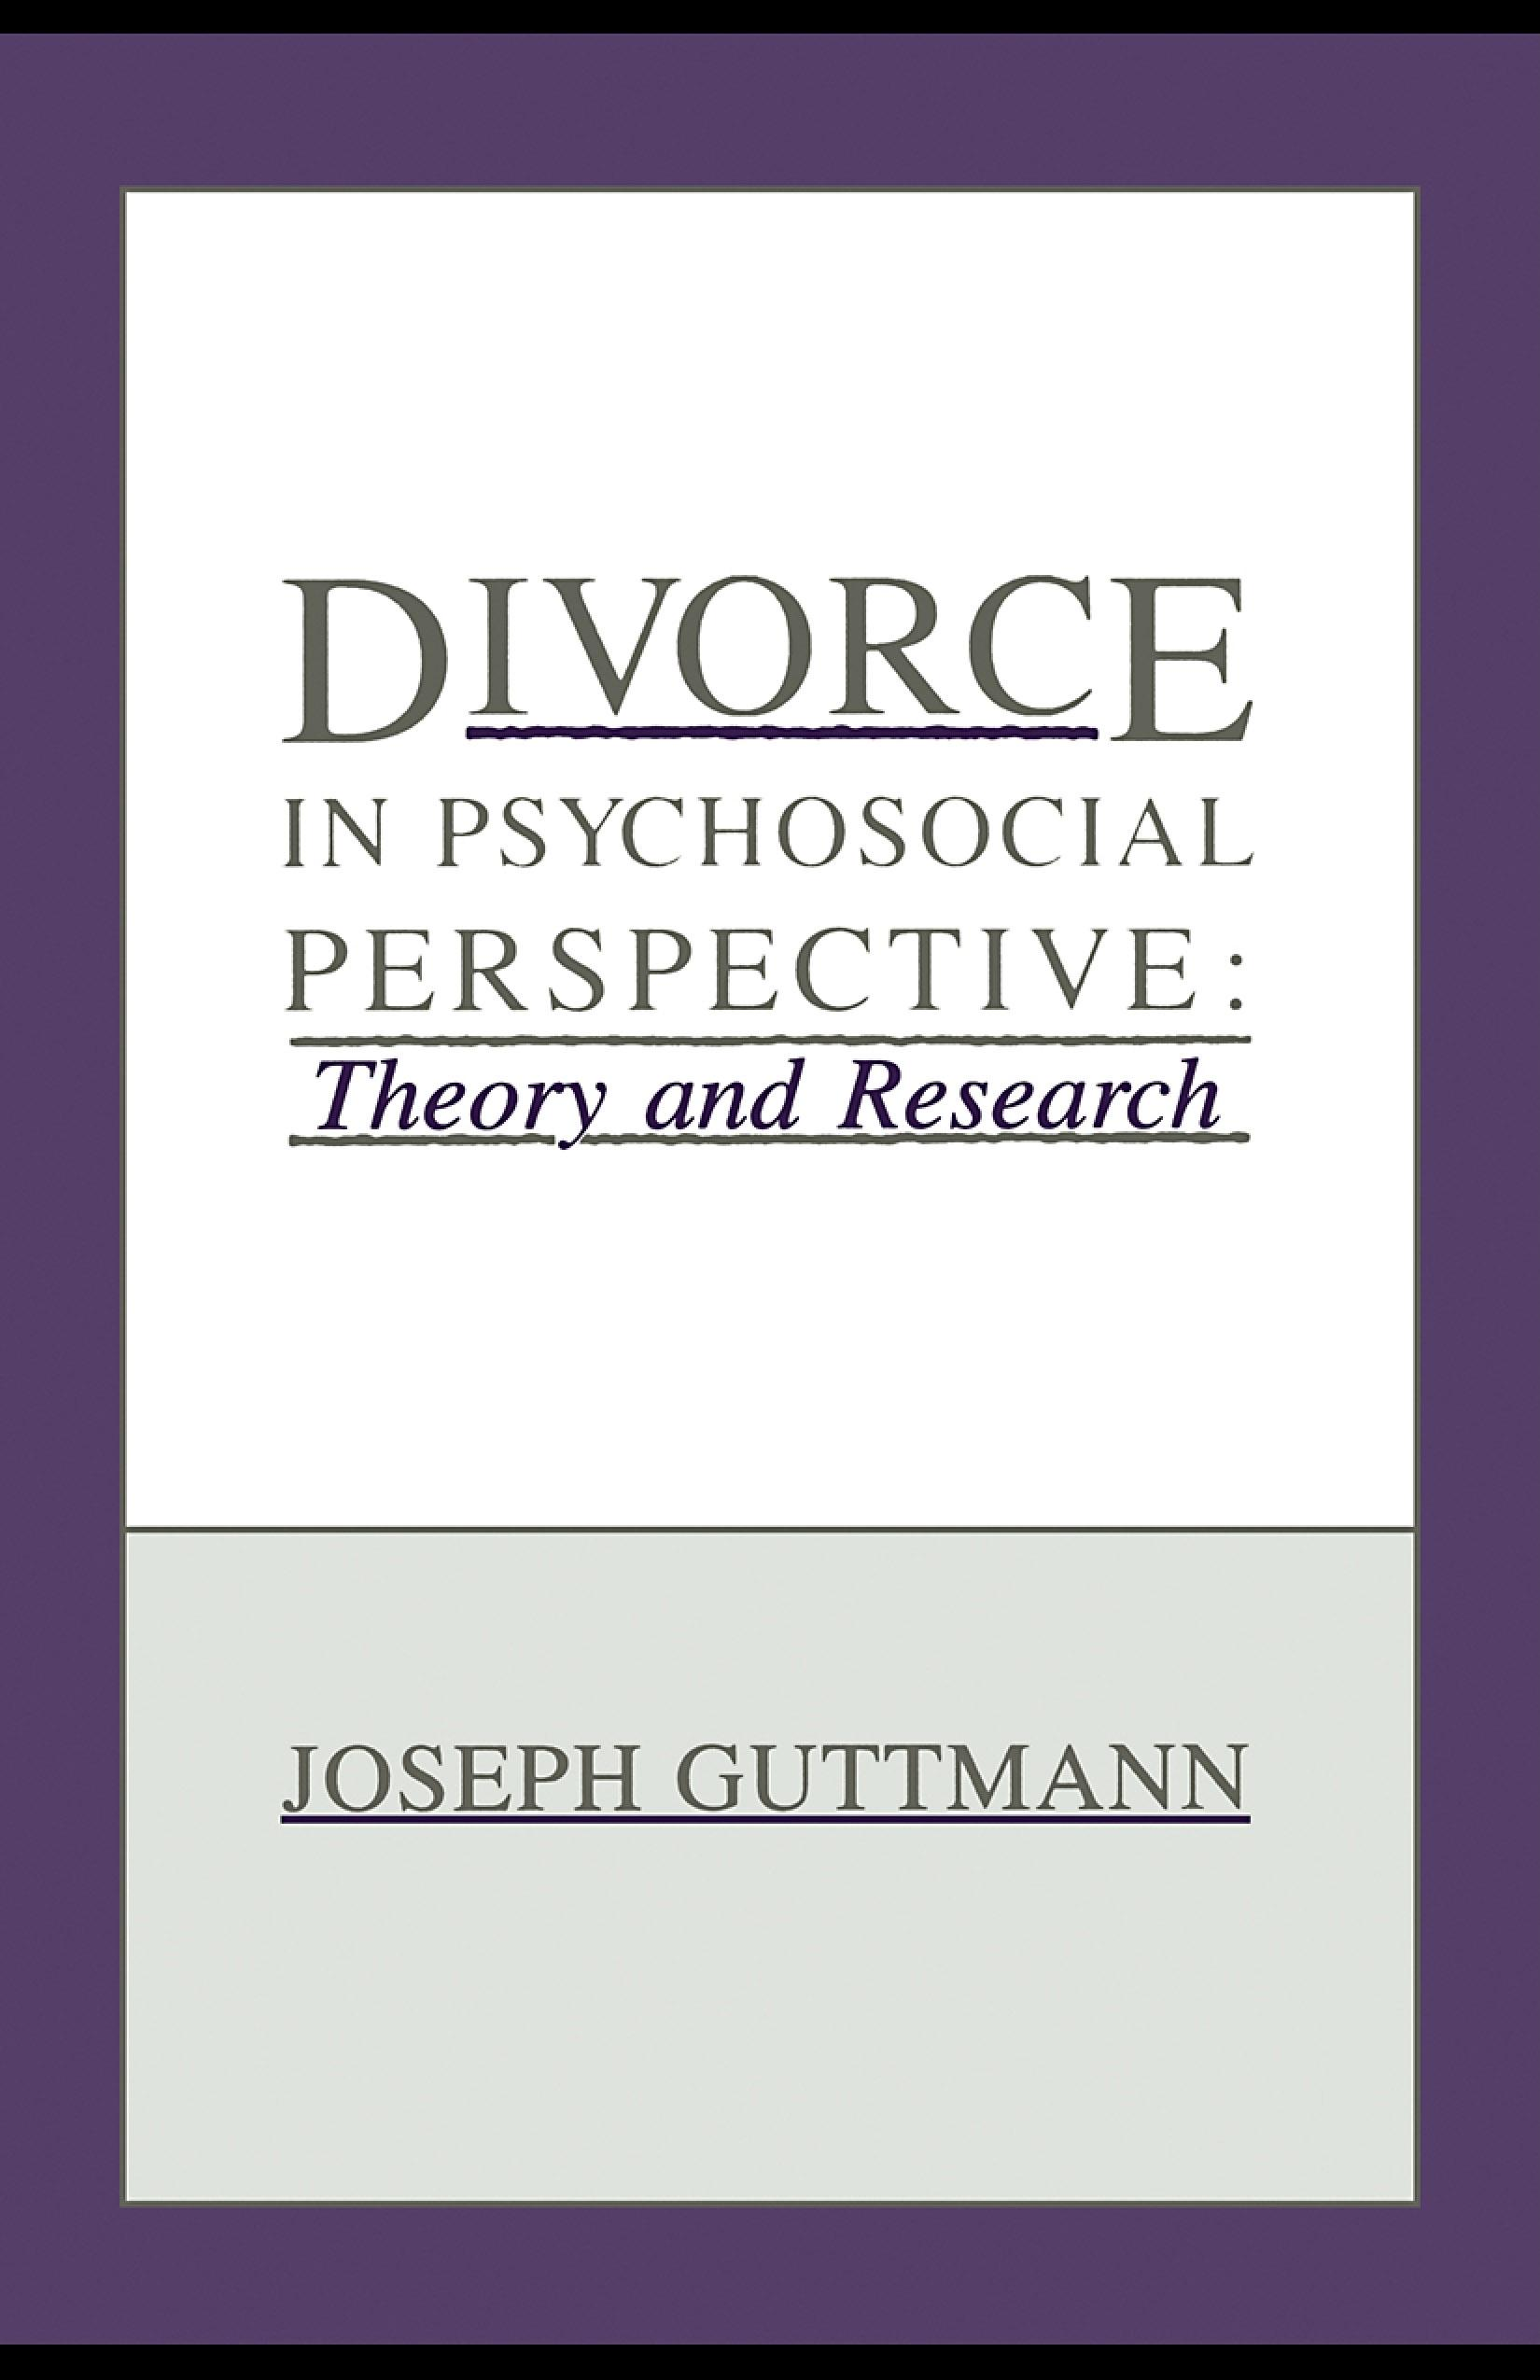 Divorce in Psychosocial Perspective: Theory and Research